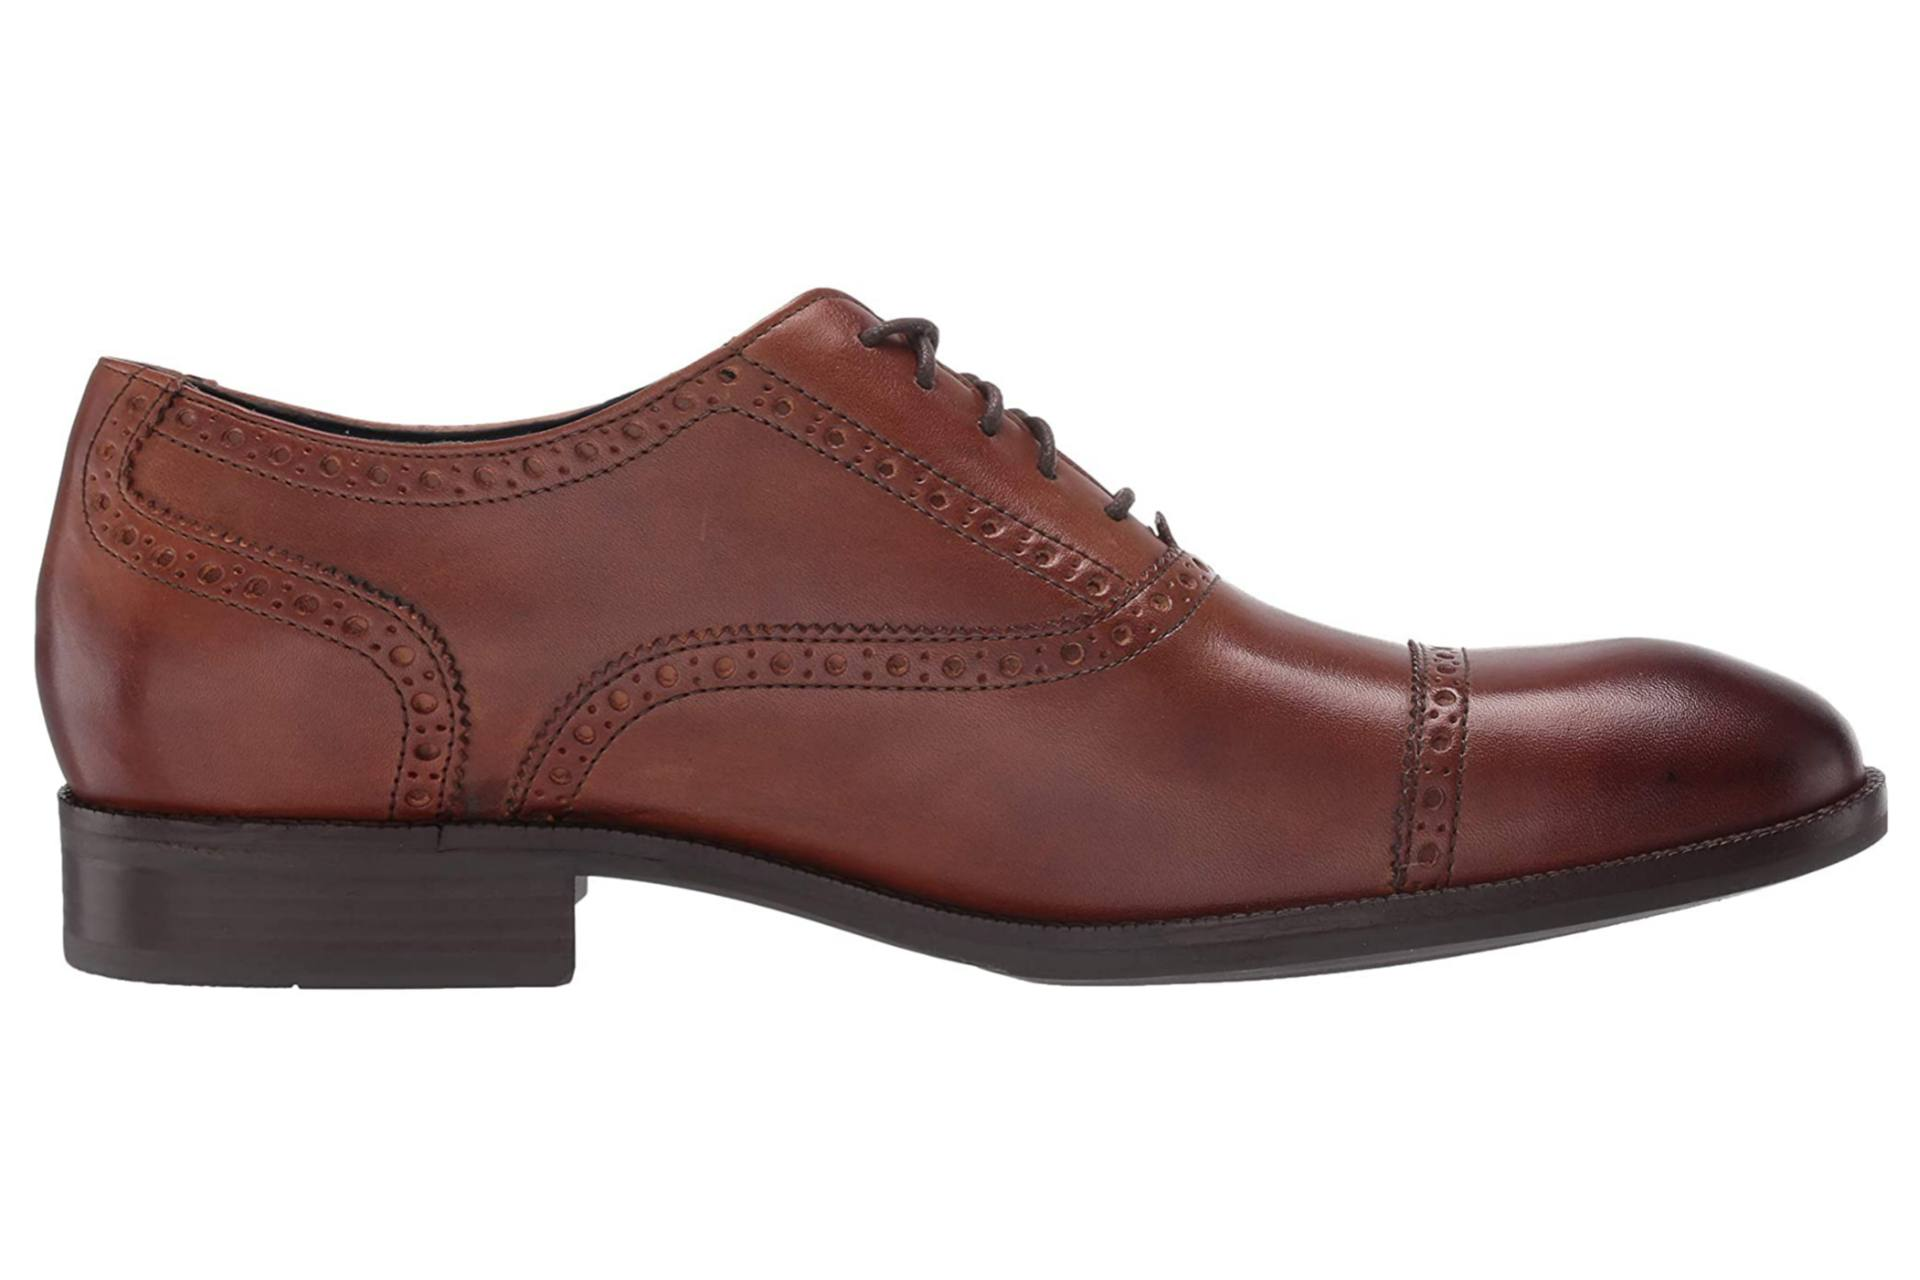 Work oxford shoes for men